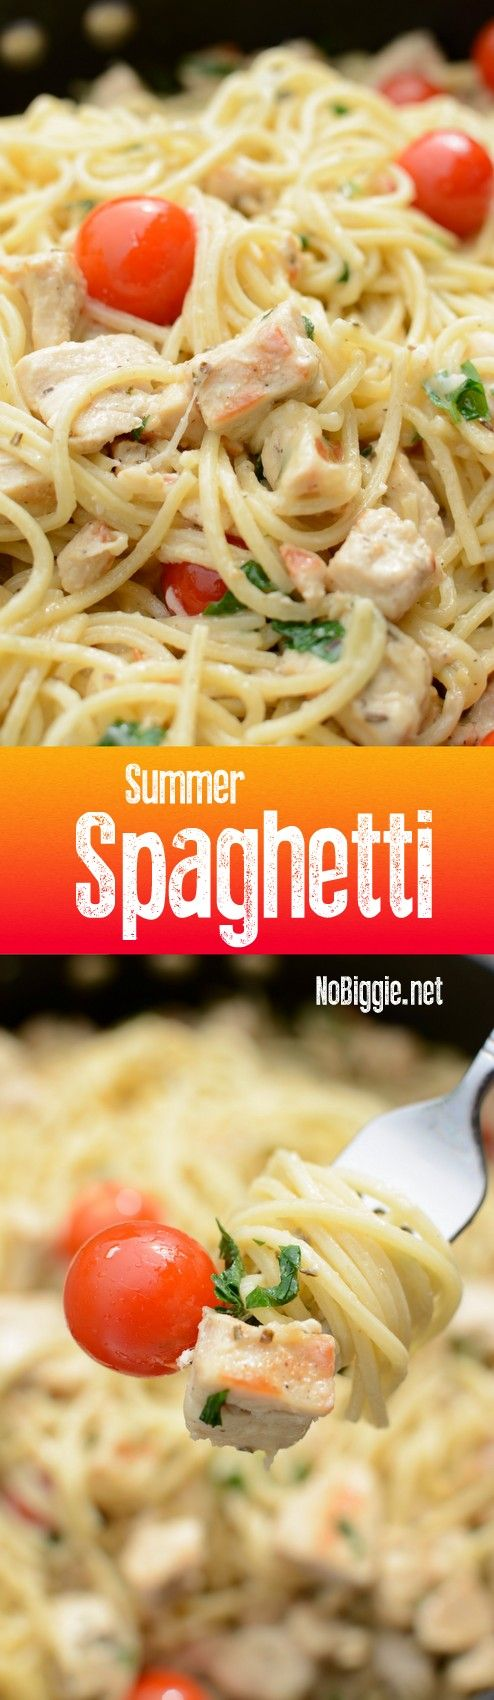 Summer Spaghetti with garlic gravy this sauce is amazing! | NoBiggie.net